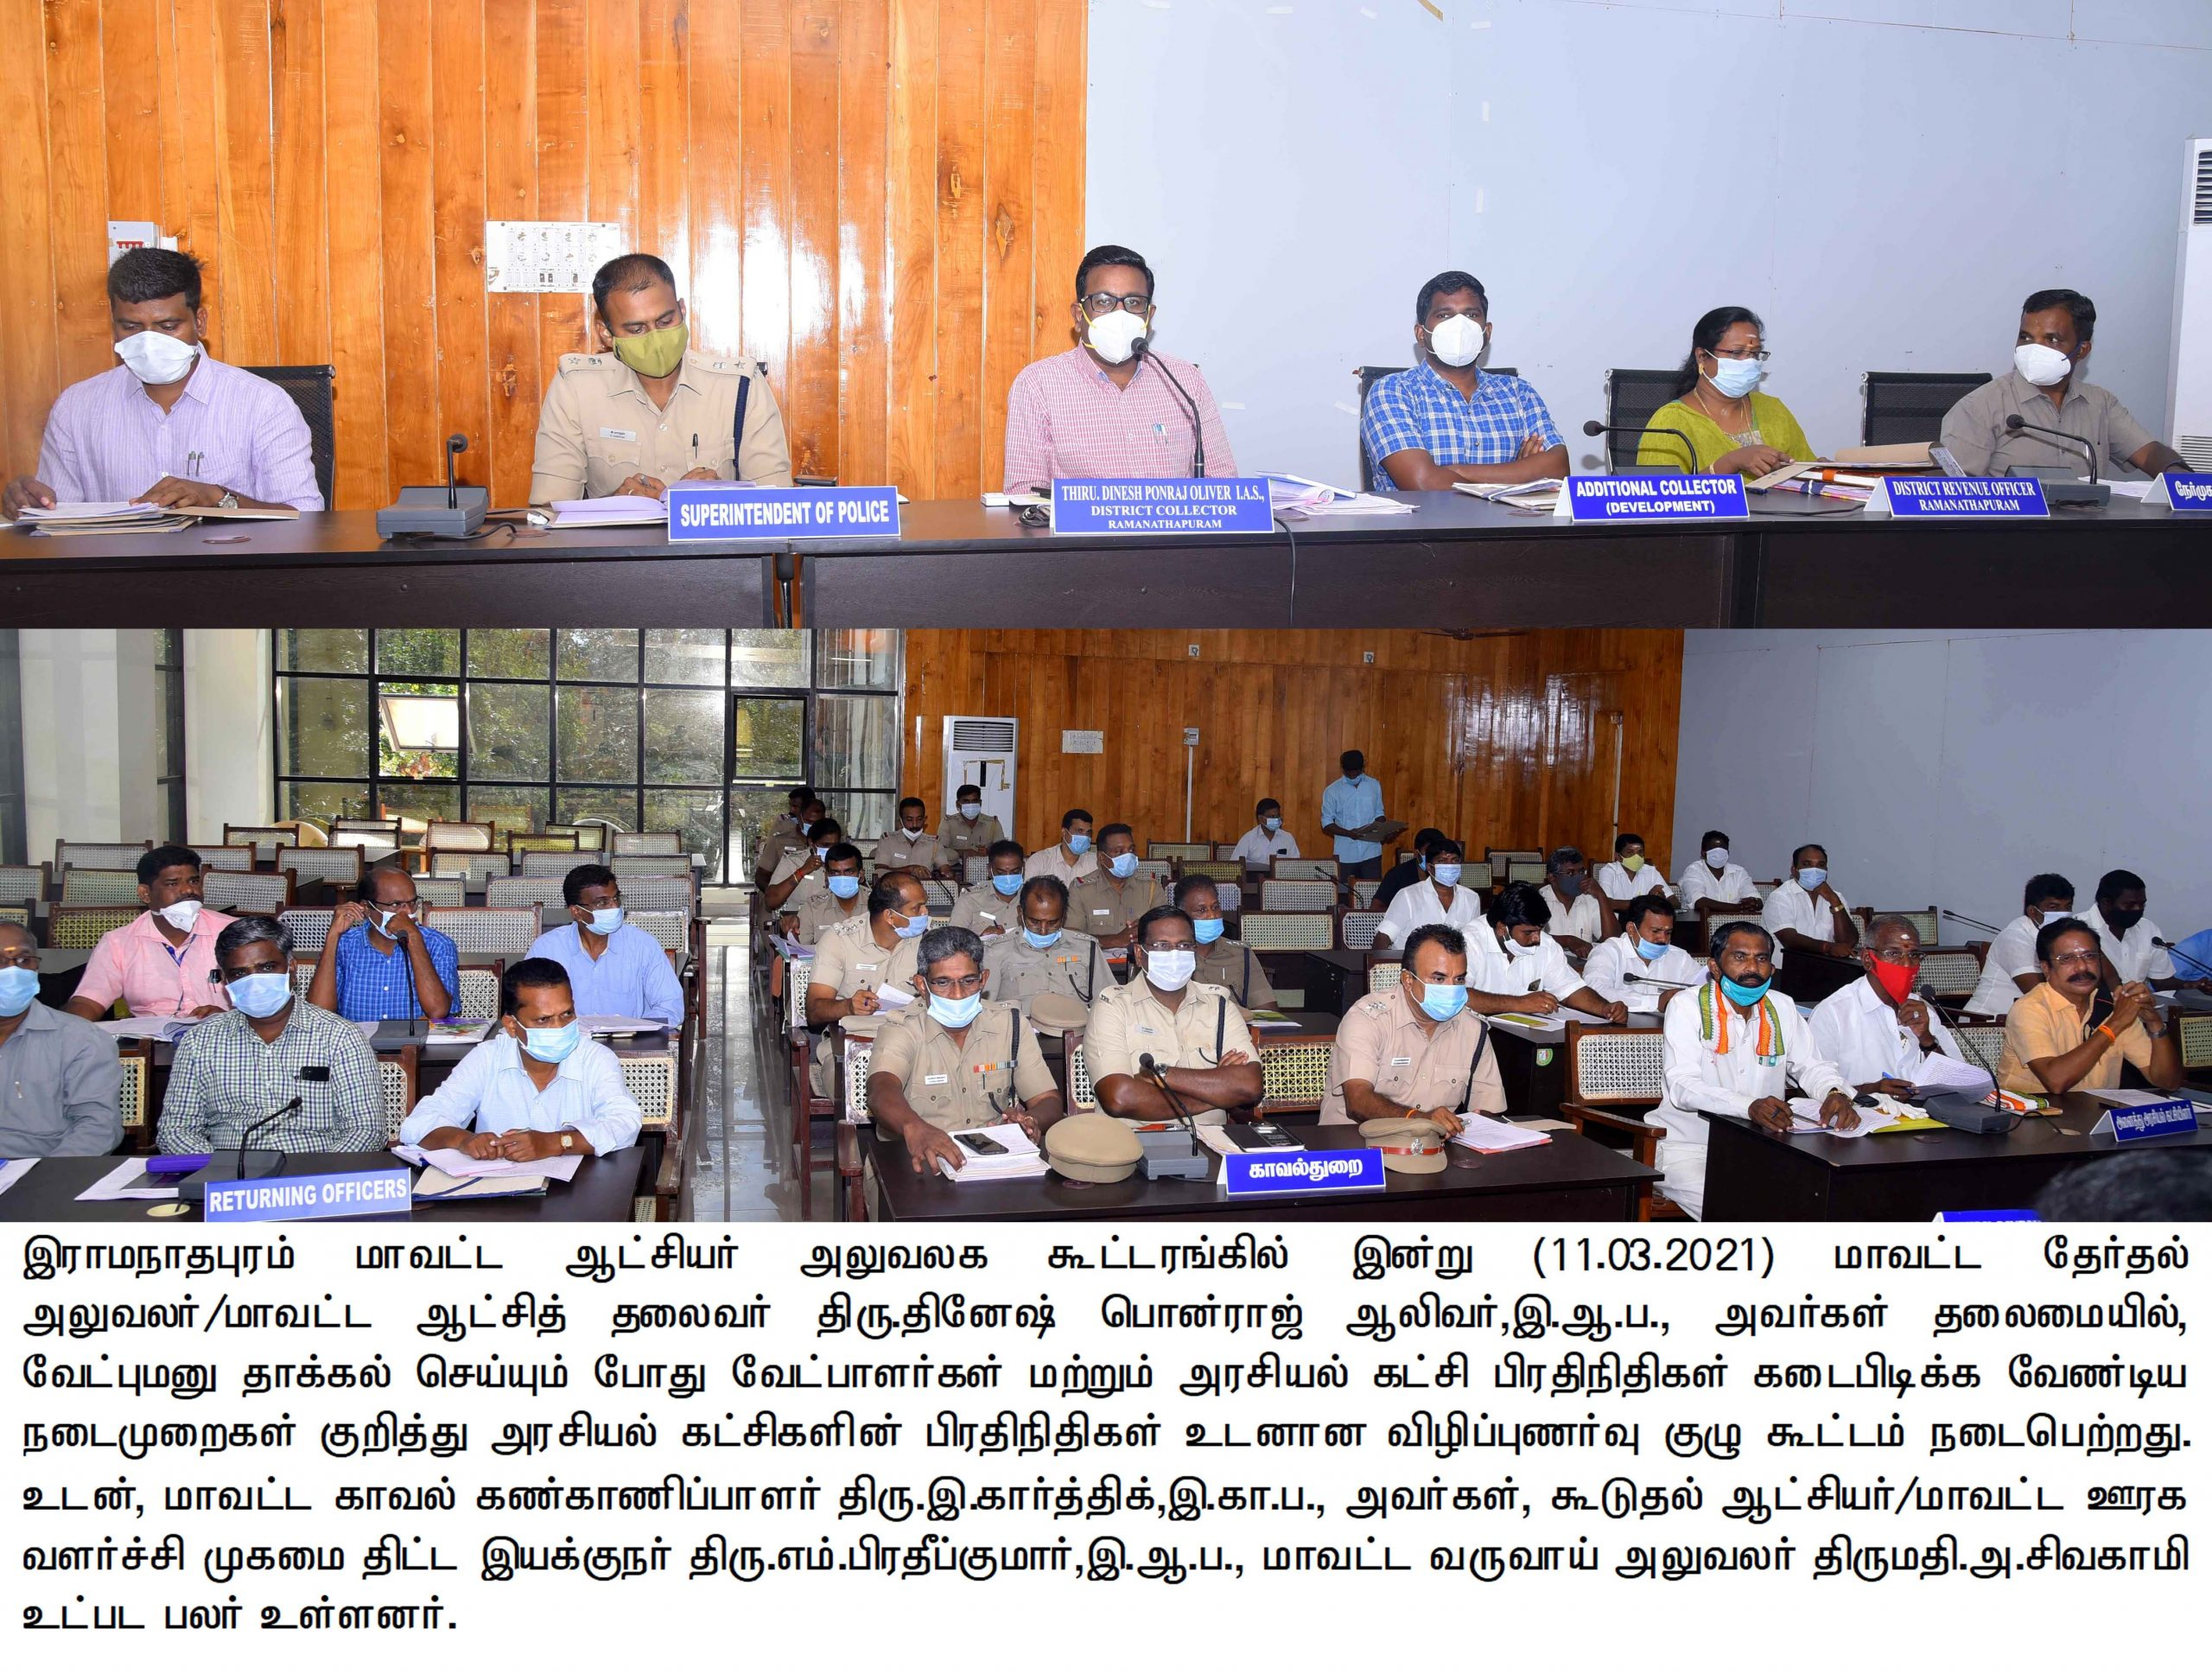 ELECTION_POLITICAL PARTY MEETING_NOMINATION PROCESS_NEWS_11/03/2021